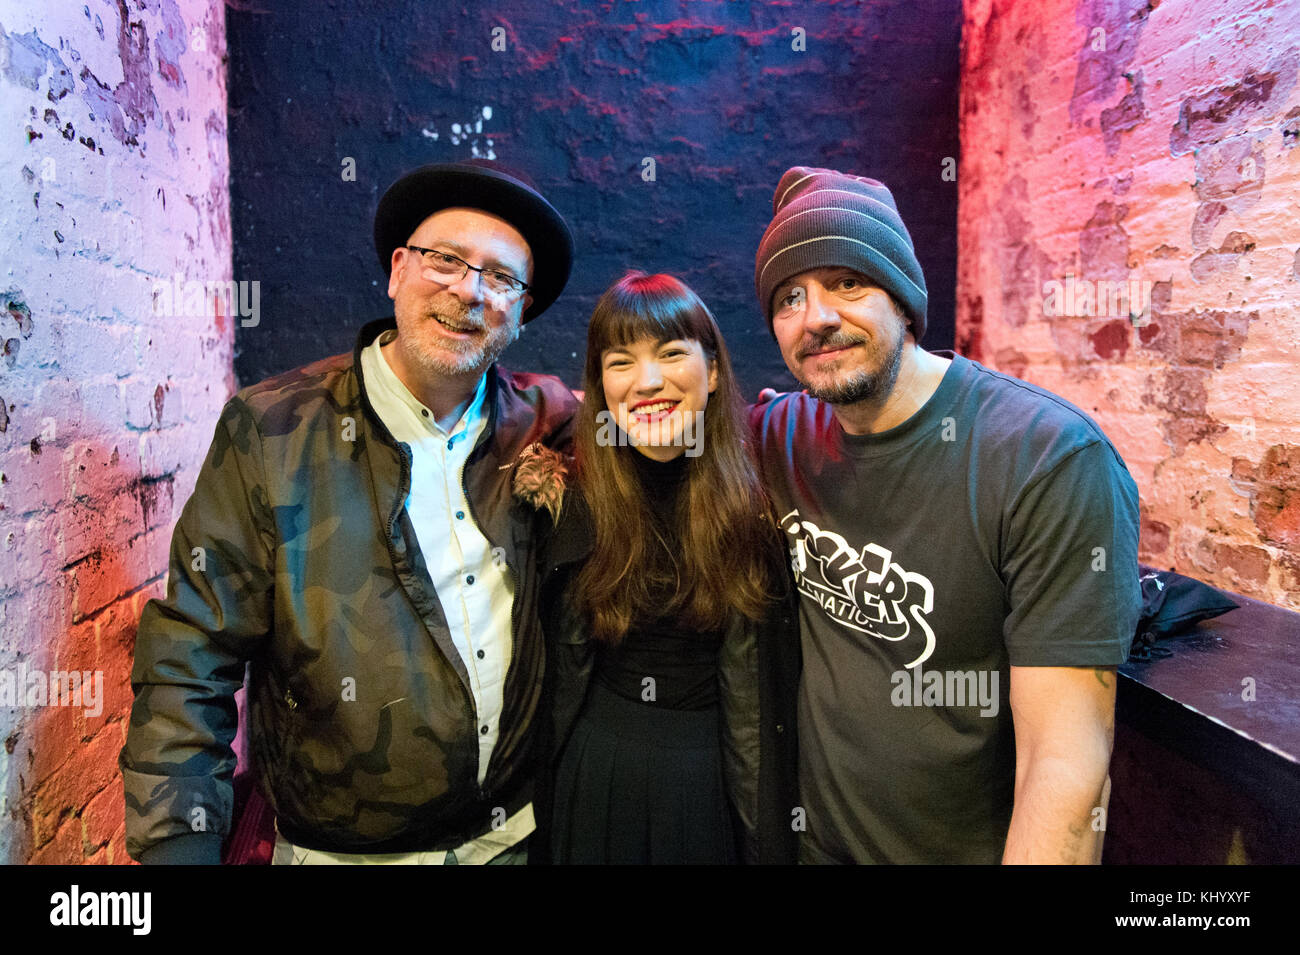 Manchester, UK. 21st November, 2017. Lost Horizons in concert at Soup Kitchen, Manchester, 21st November. The band - Stock Image